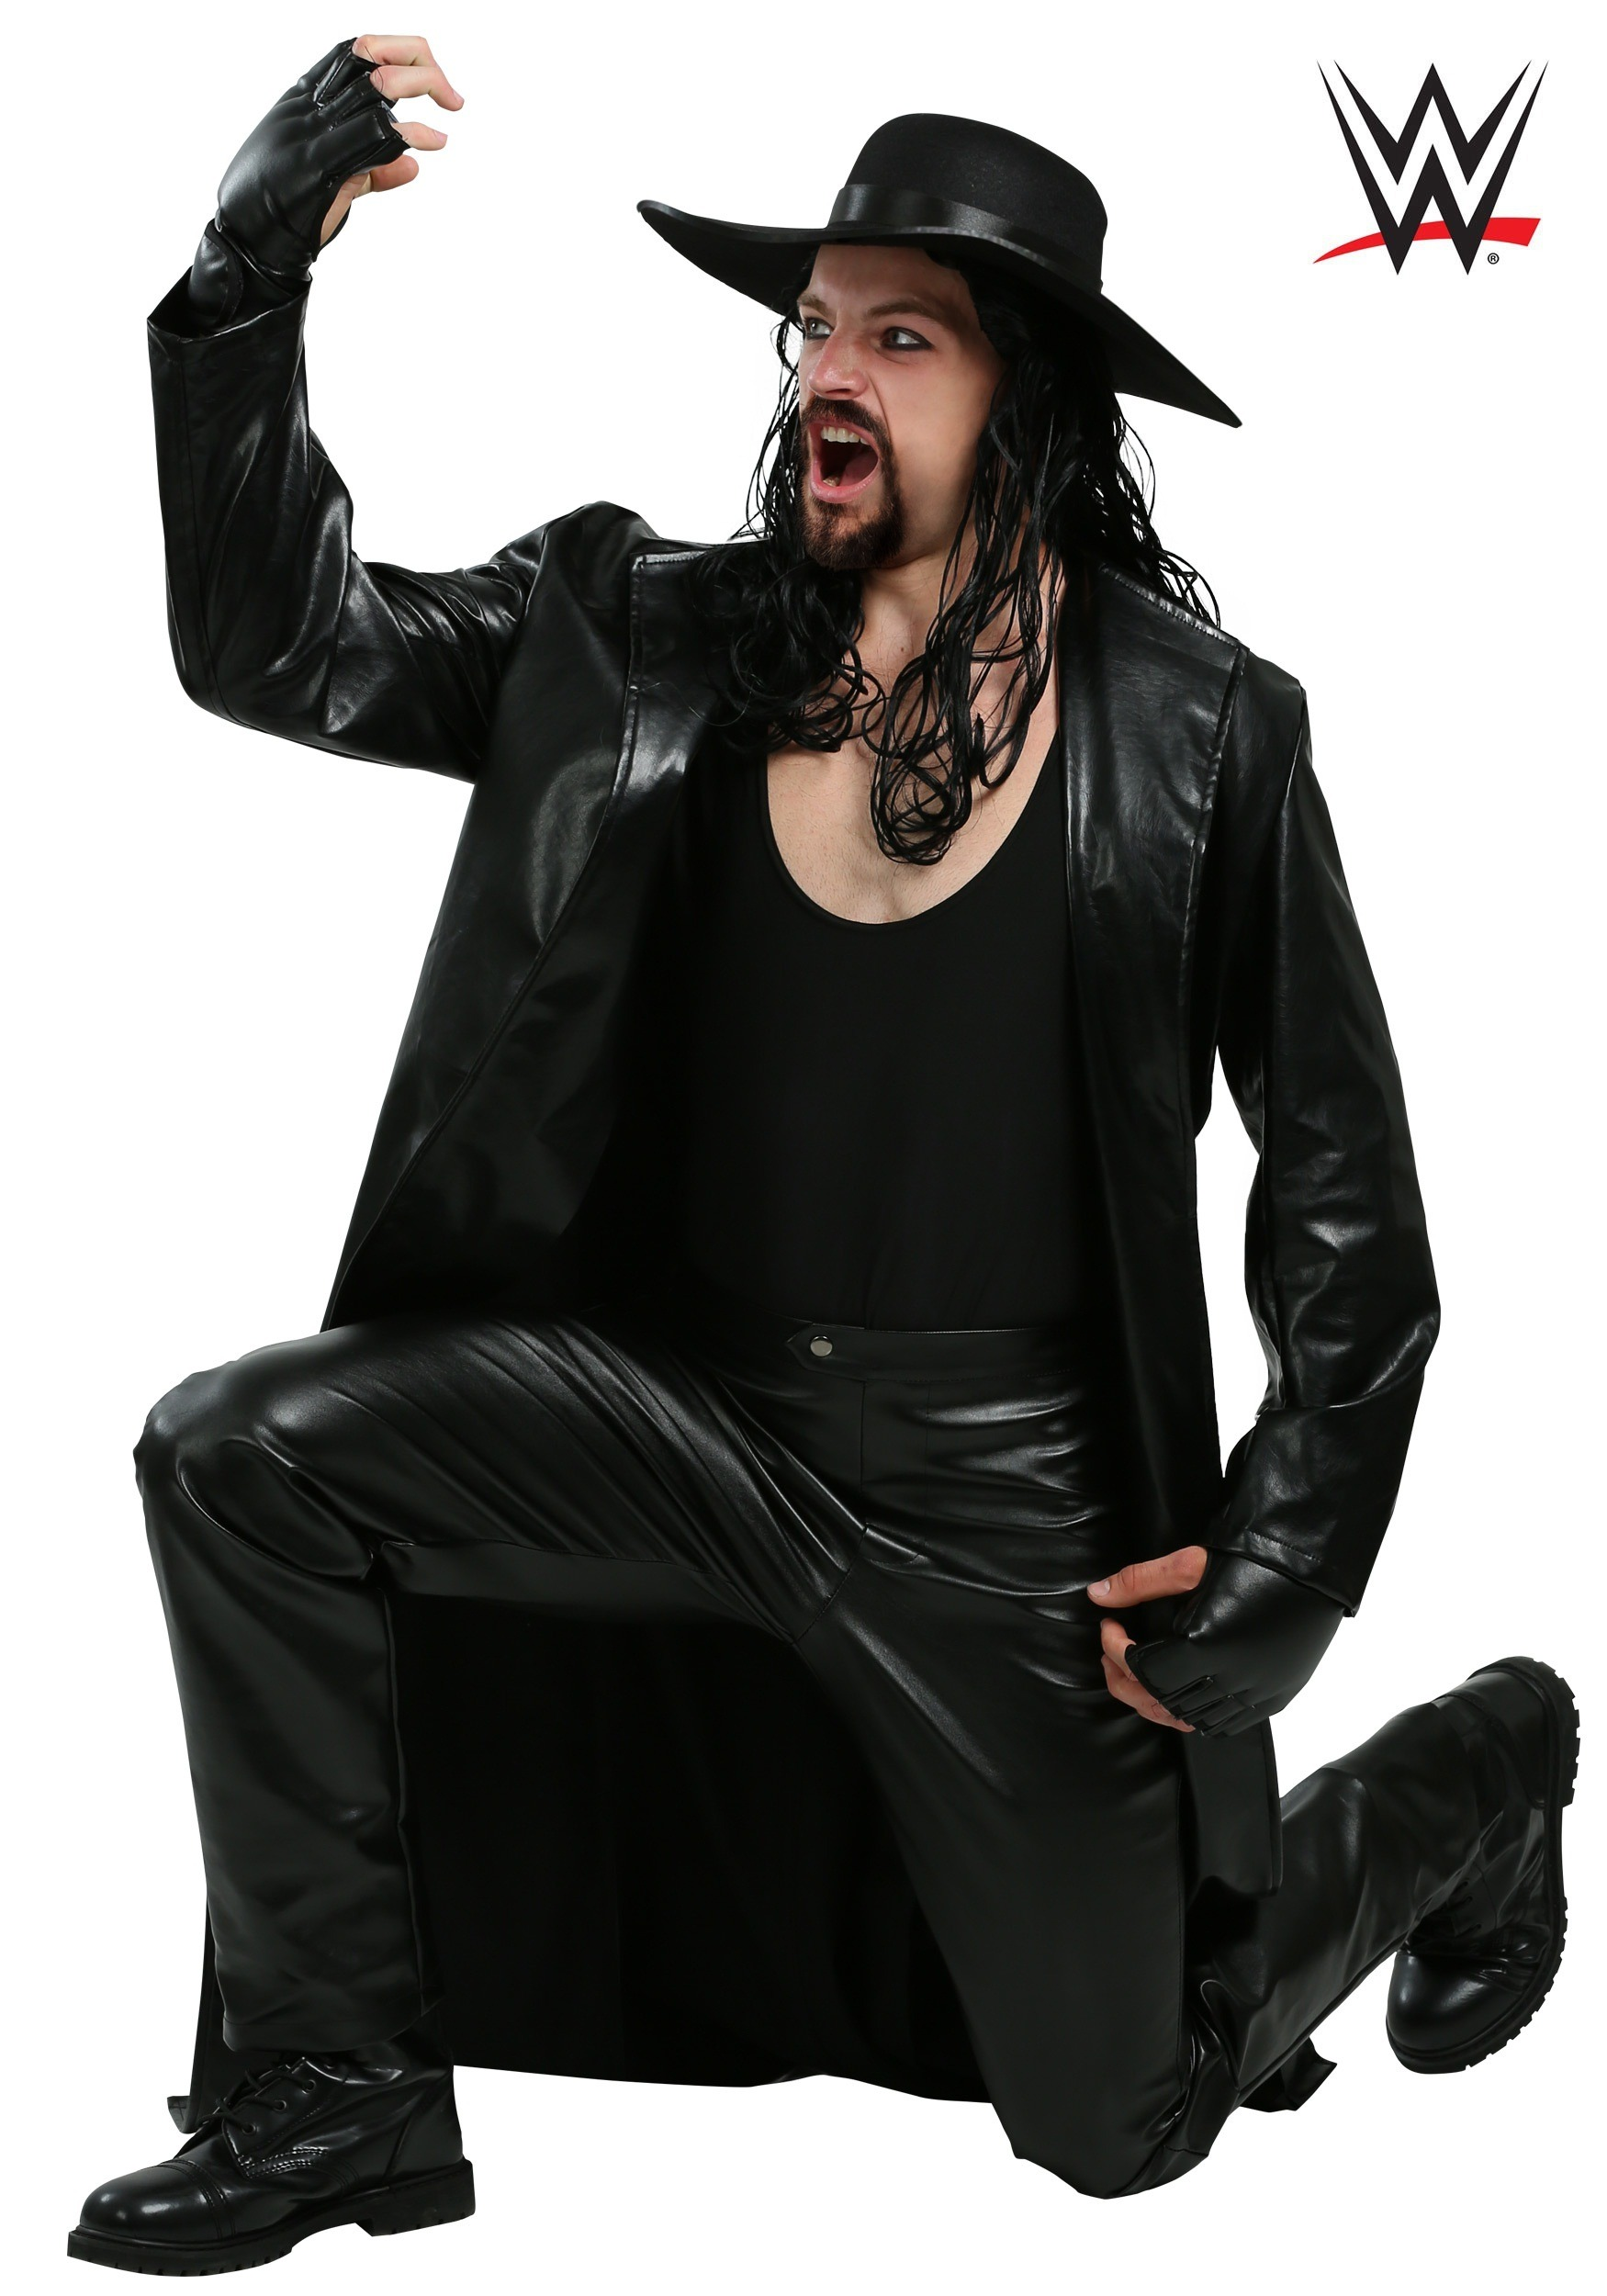 f5f38baea68 WWE Undertaker Costume for Men